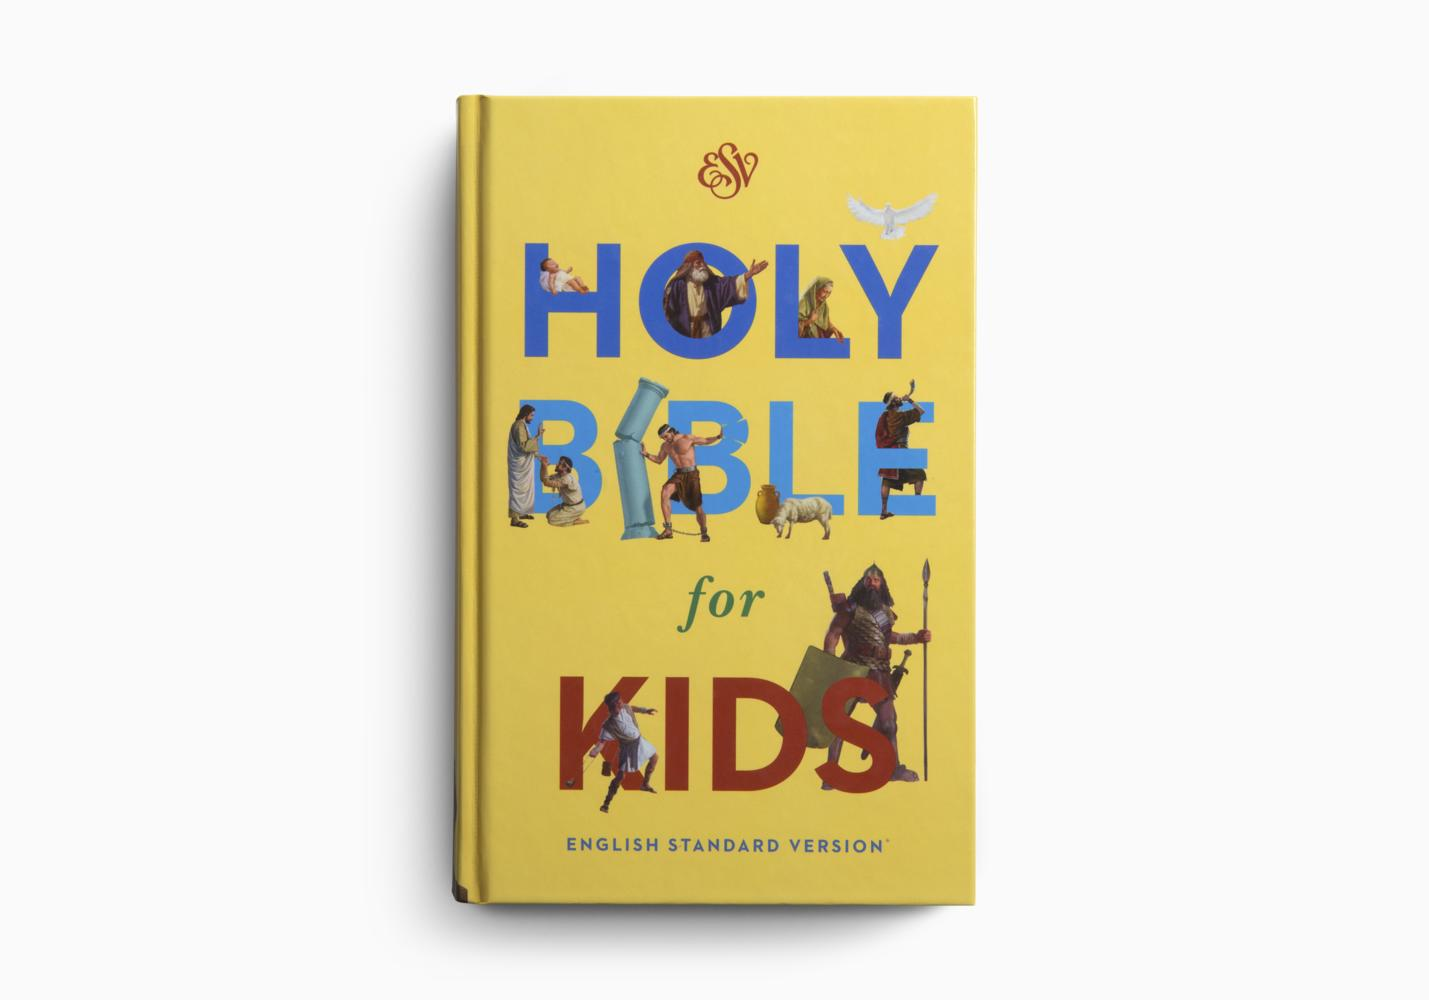 ESV Holy Bible for Kids, Compact